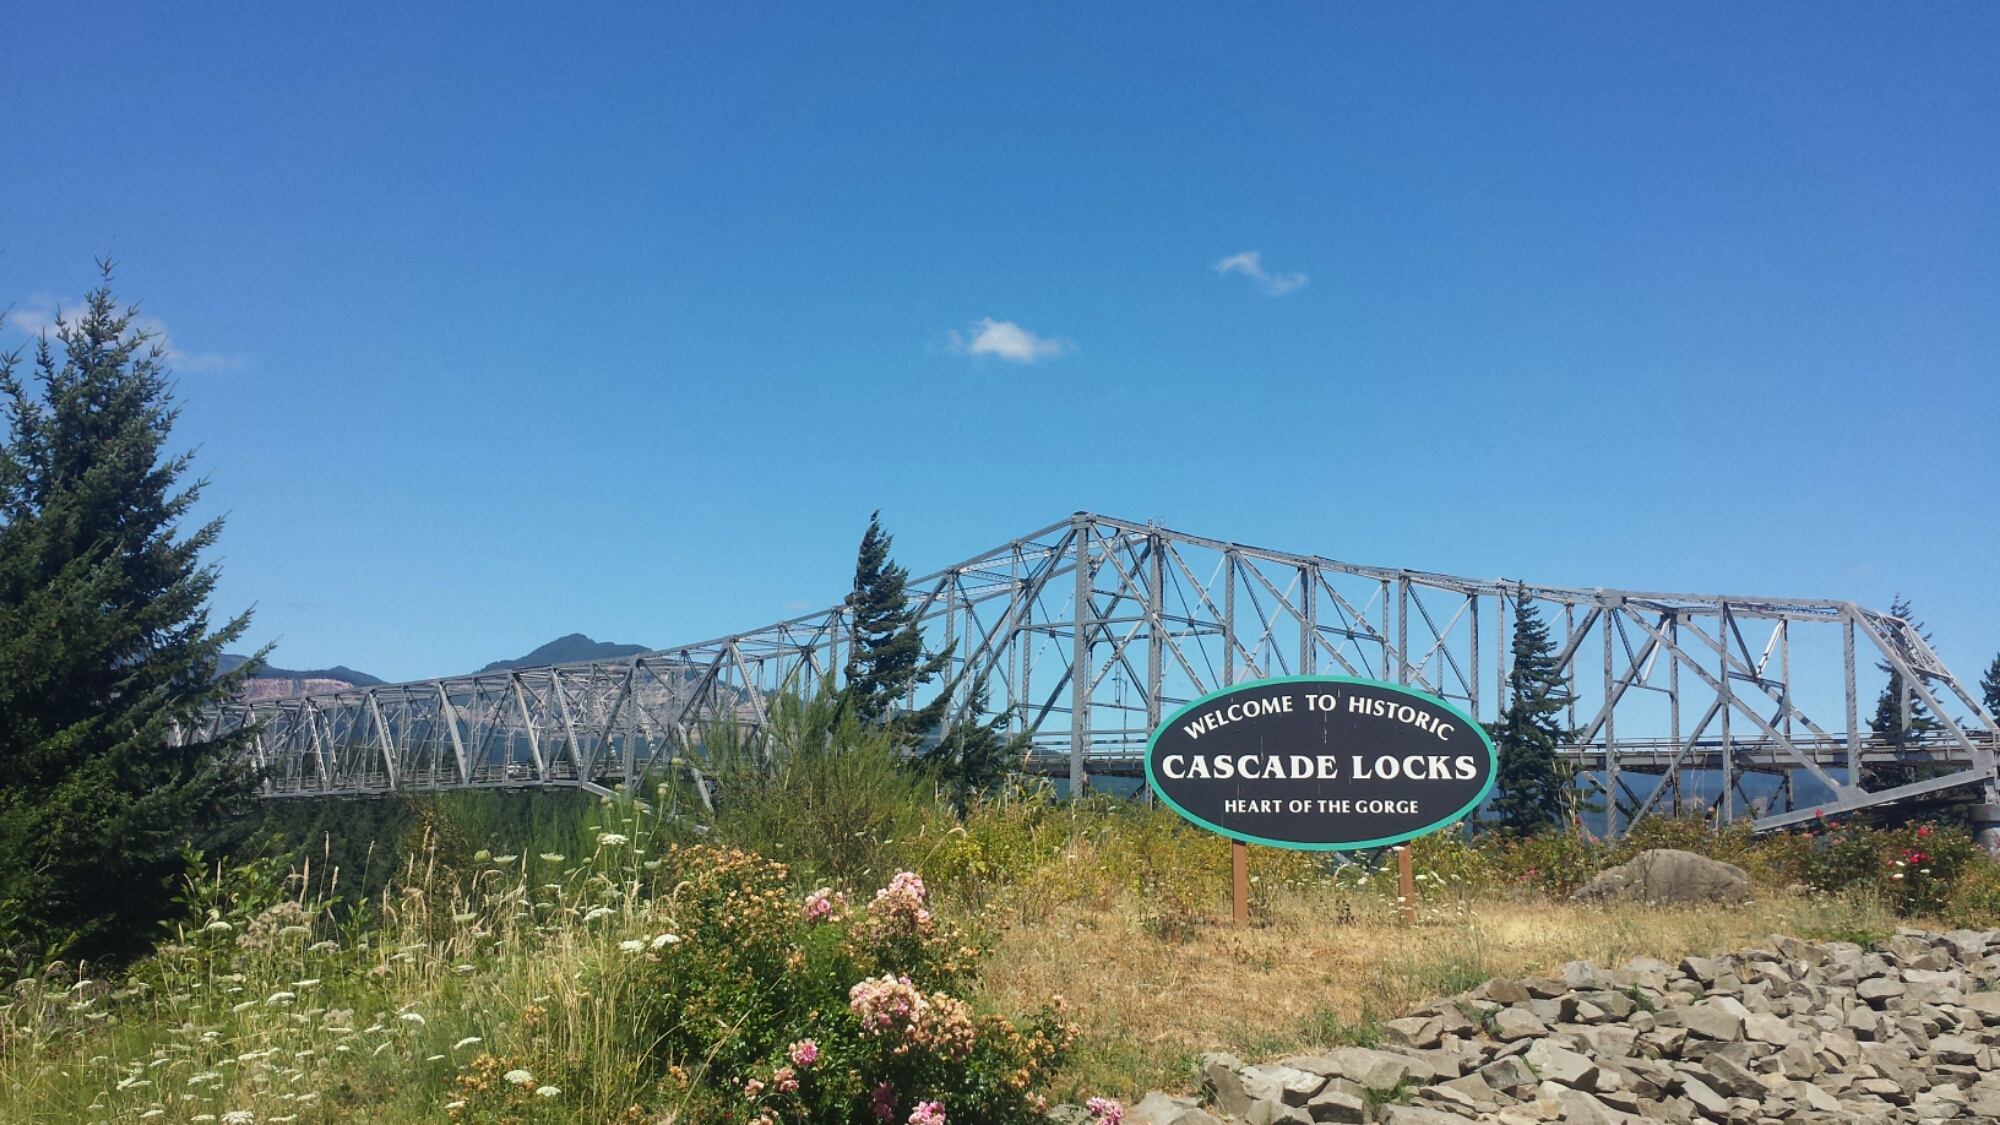 Sisters To Cascade Locks July 2015 A Skirt In The Dirt